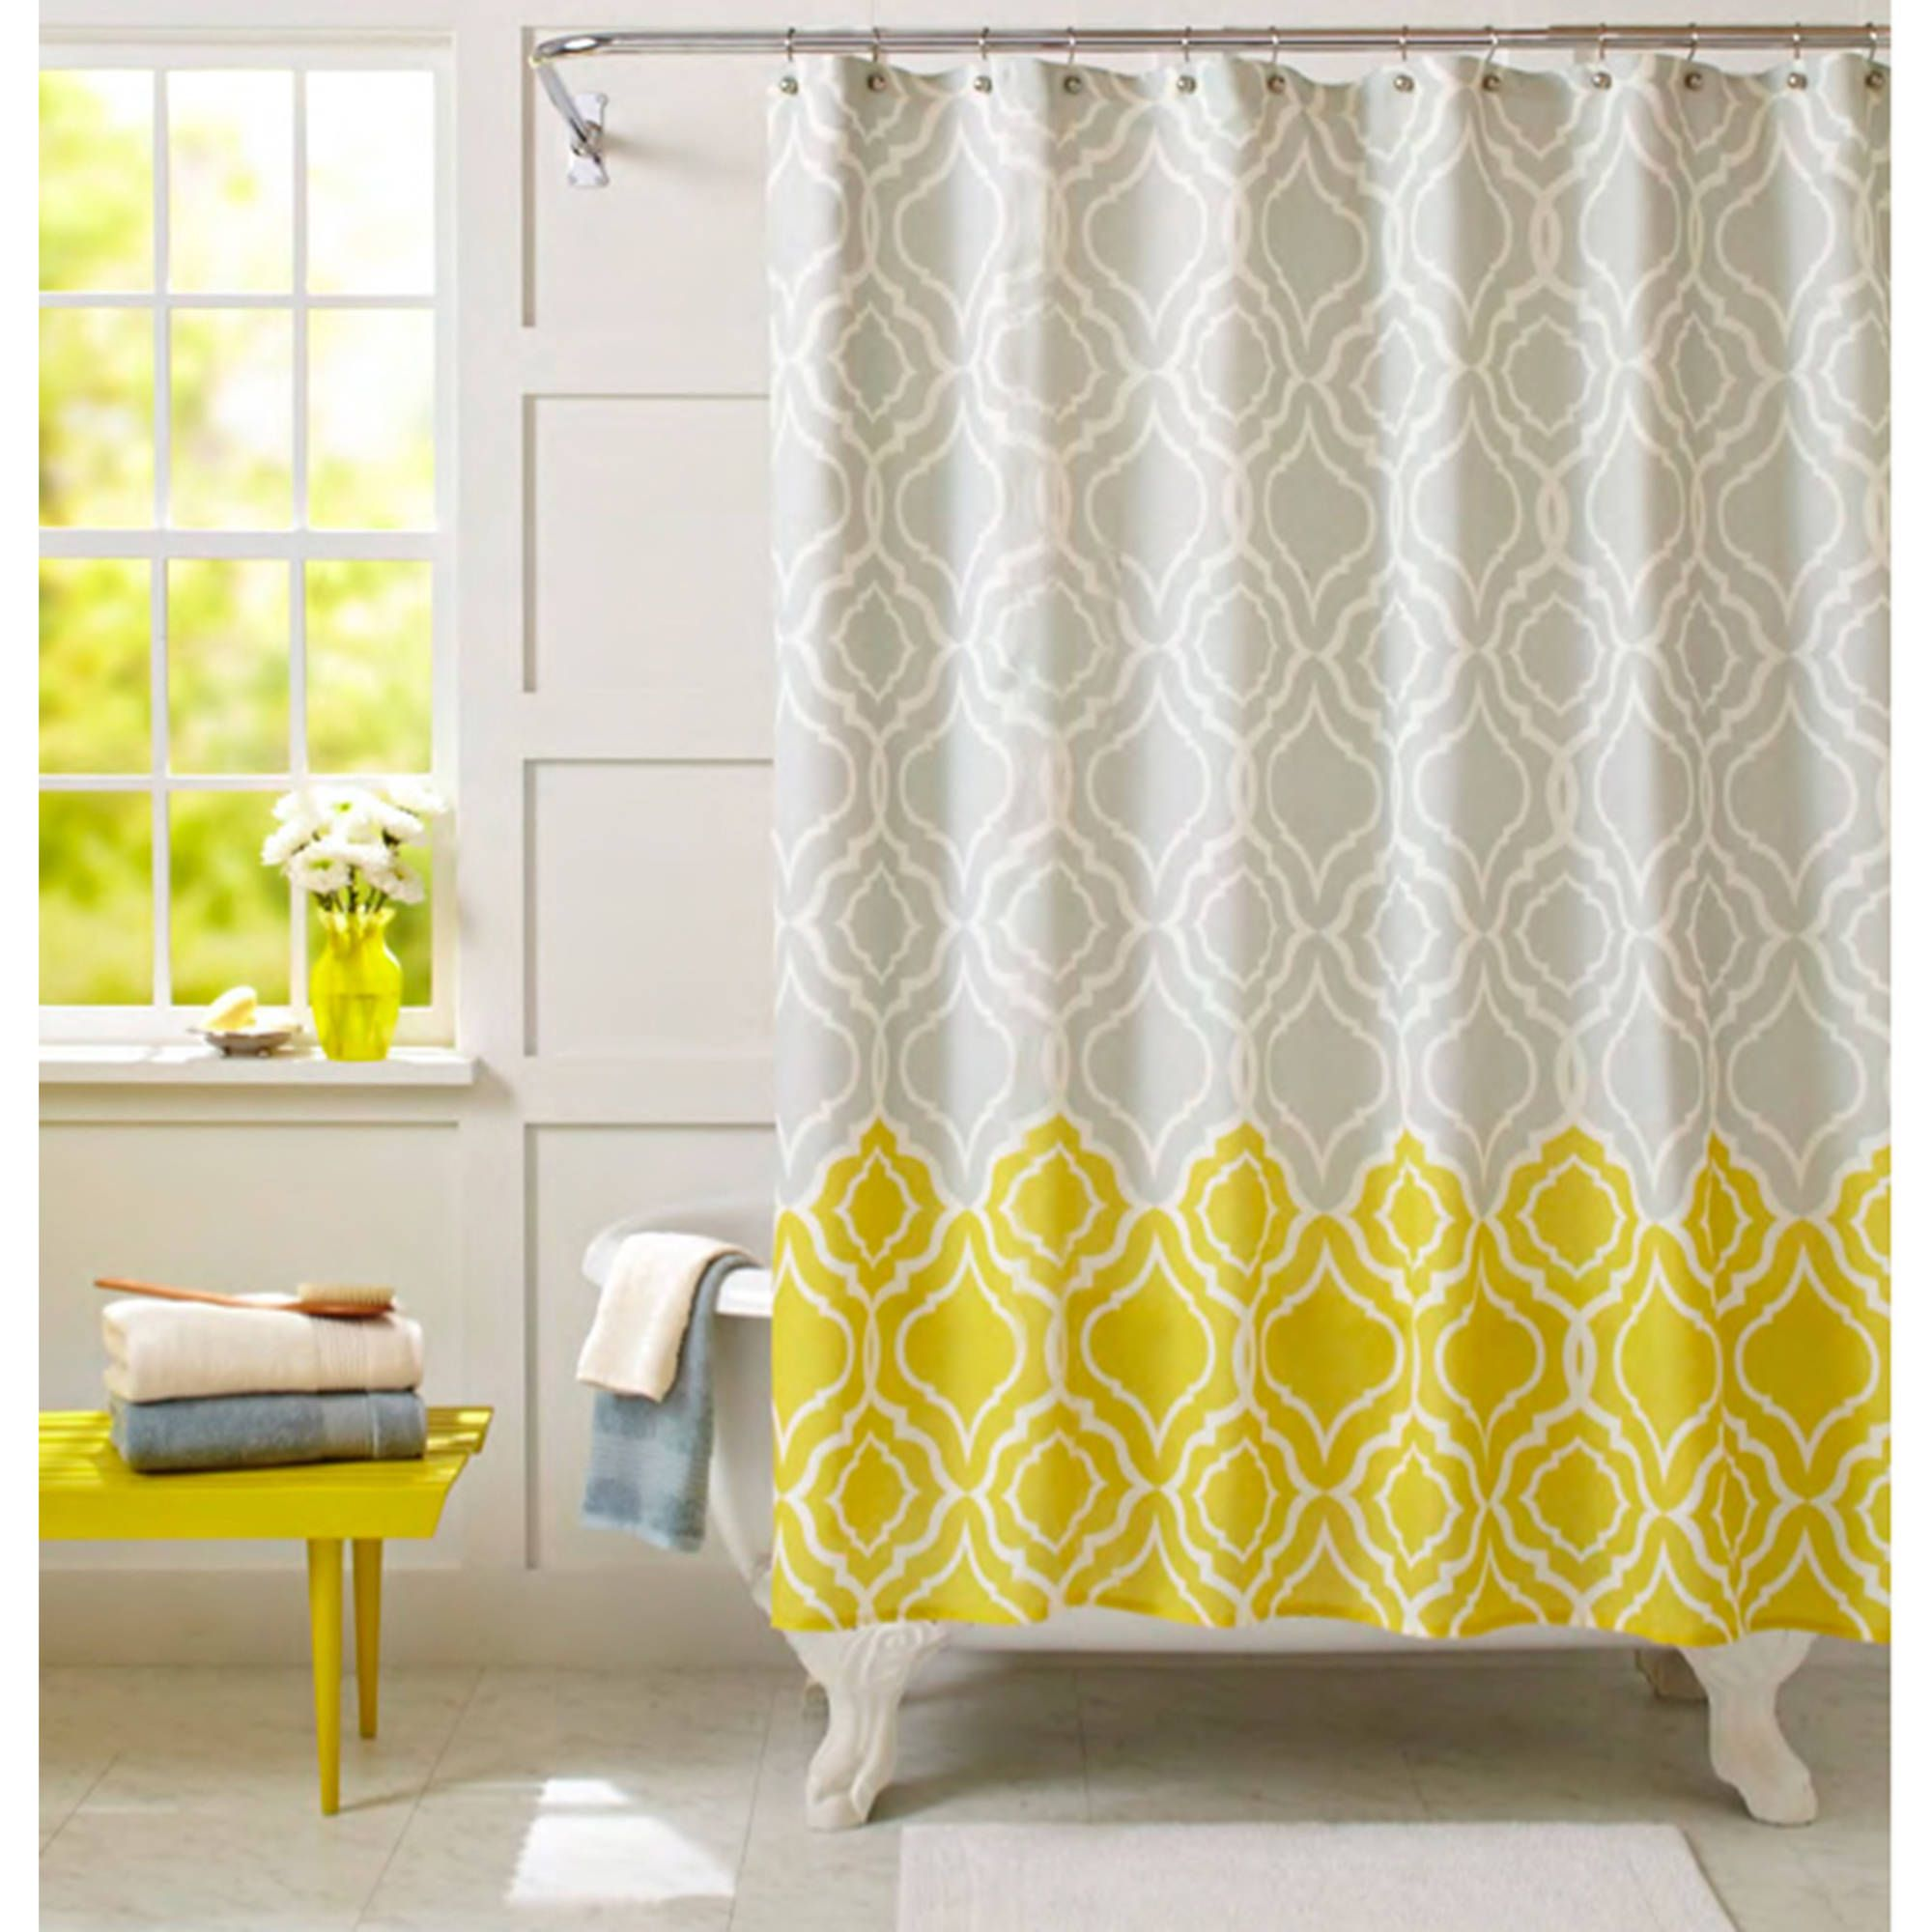 e0d96fa04dee836d31c3953c4e409ae4 - Better Homes And Gardens Leaves Semi Sheer Window Panel Citron